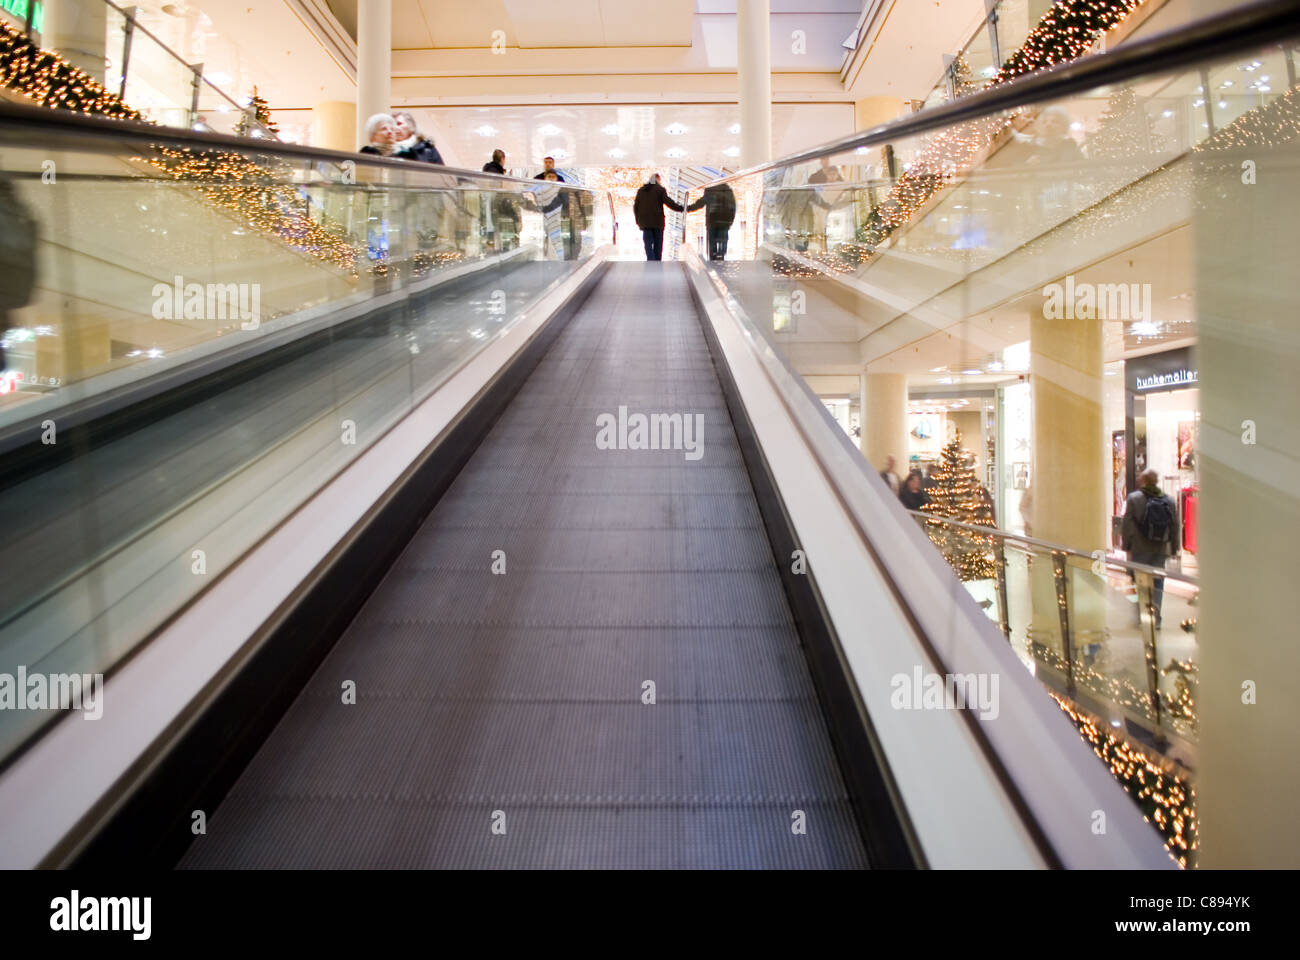 Christmas shopping mall stairways decorated with lights - Stock Image